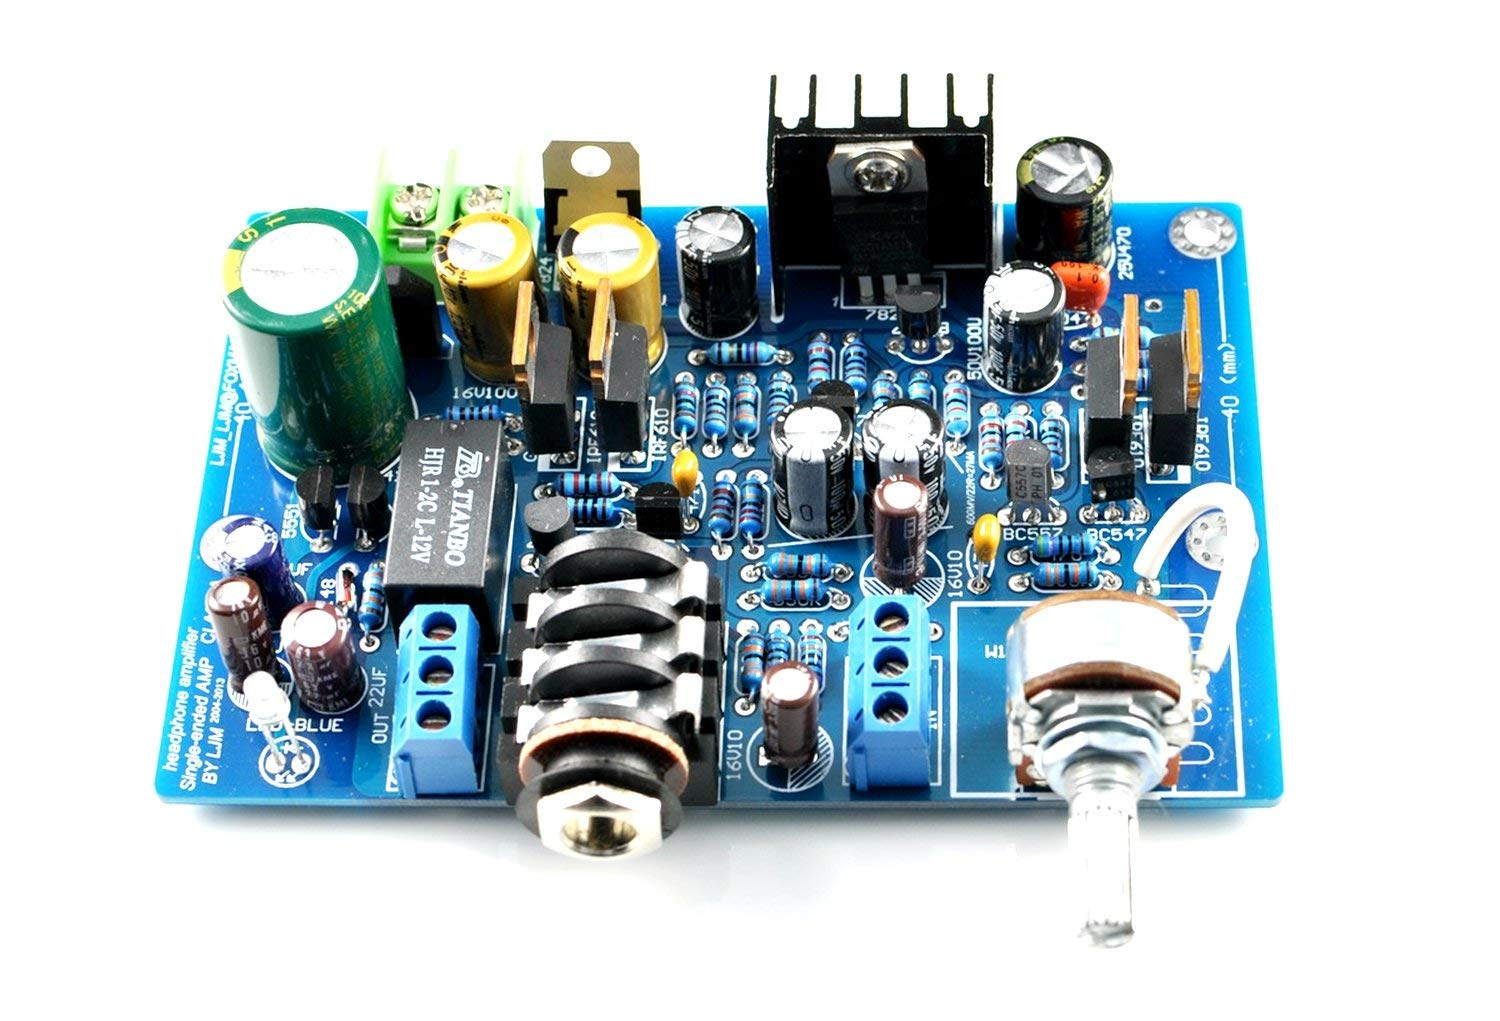 Cheap Mosfet Amplifier Circuit Find Deals 600 Watt Power With Pcb Diy Get Quotations Irf610 Single Ended Class A Headphone Kit